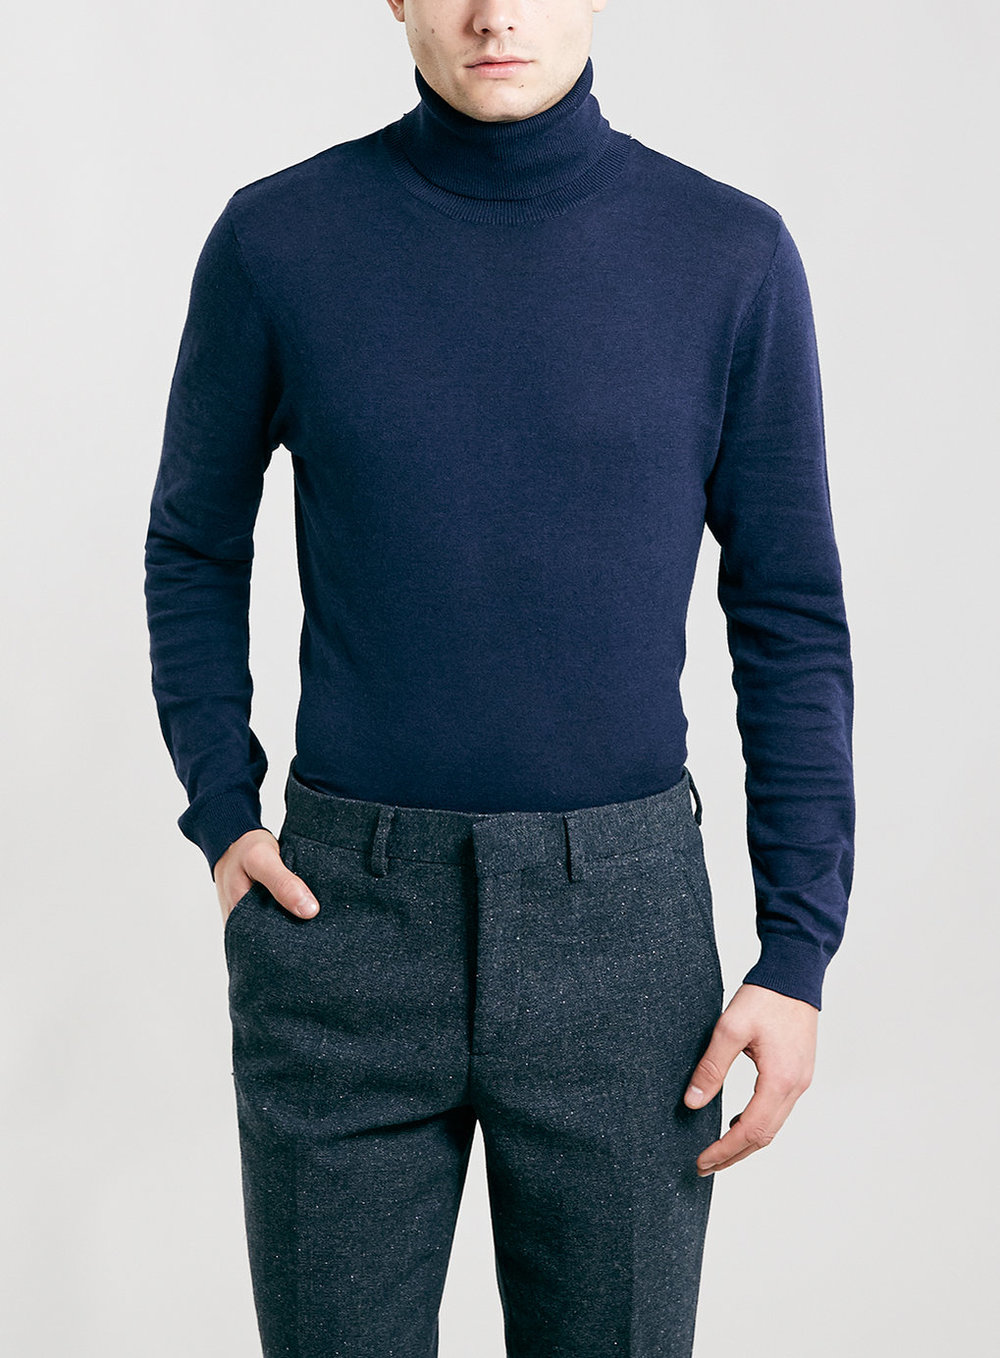 Deep Violet Roll Neck Sweater, was $40, now $32